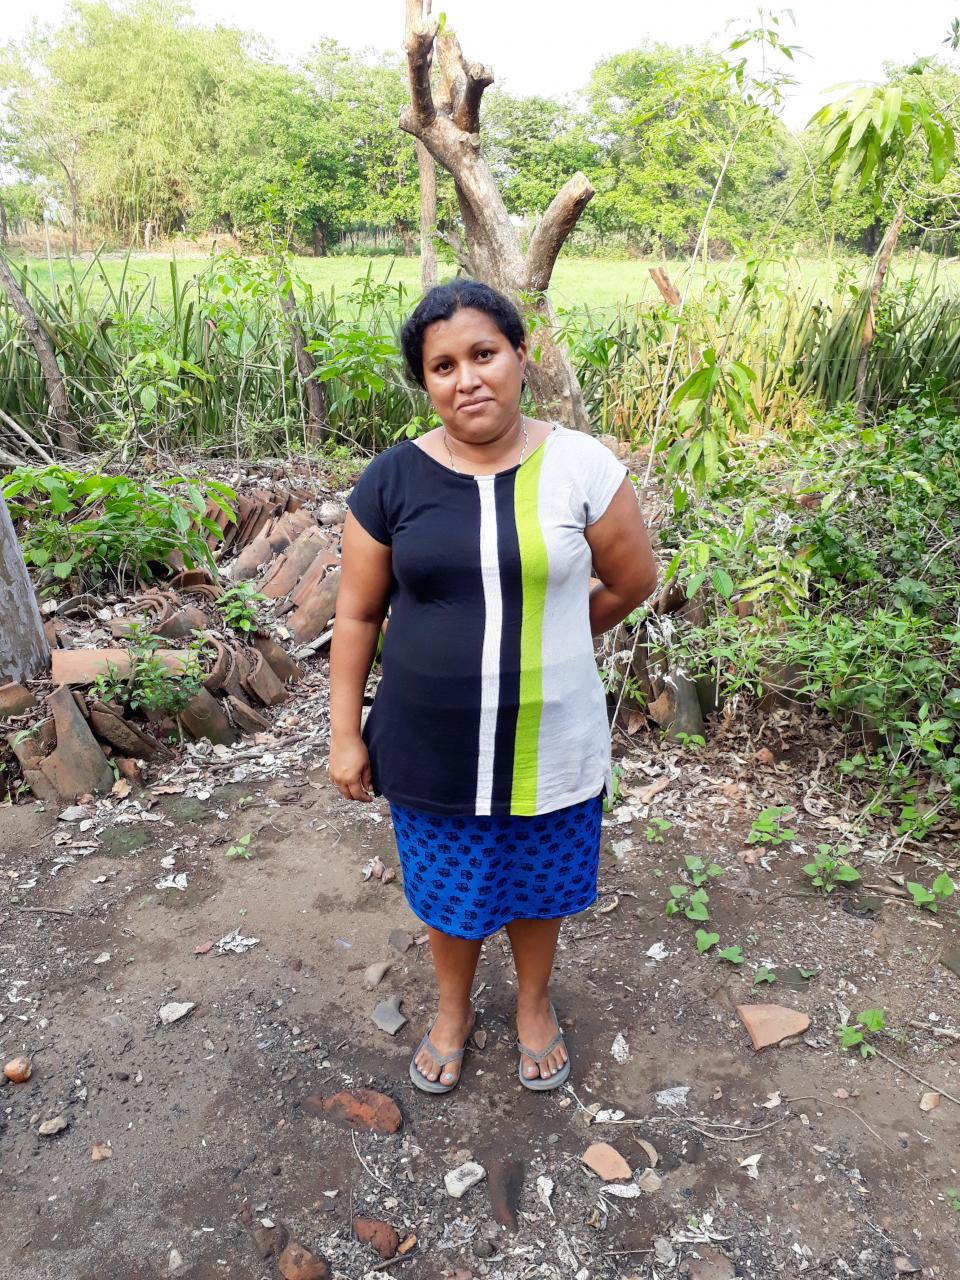 Verónica Roxana in El Salvador has a loan to buy and sell clothing